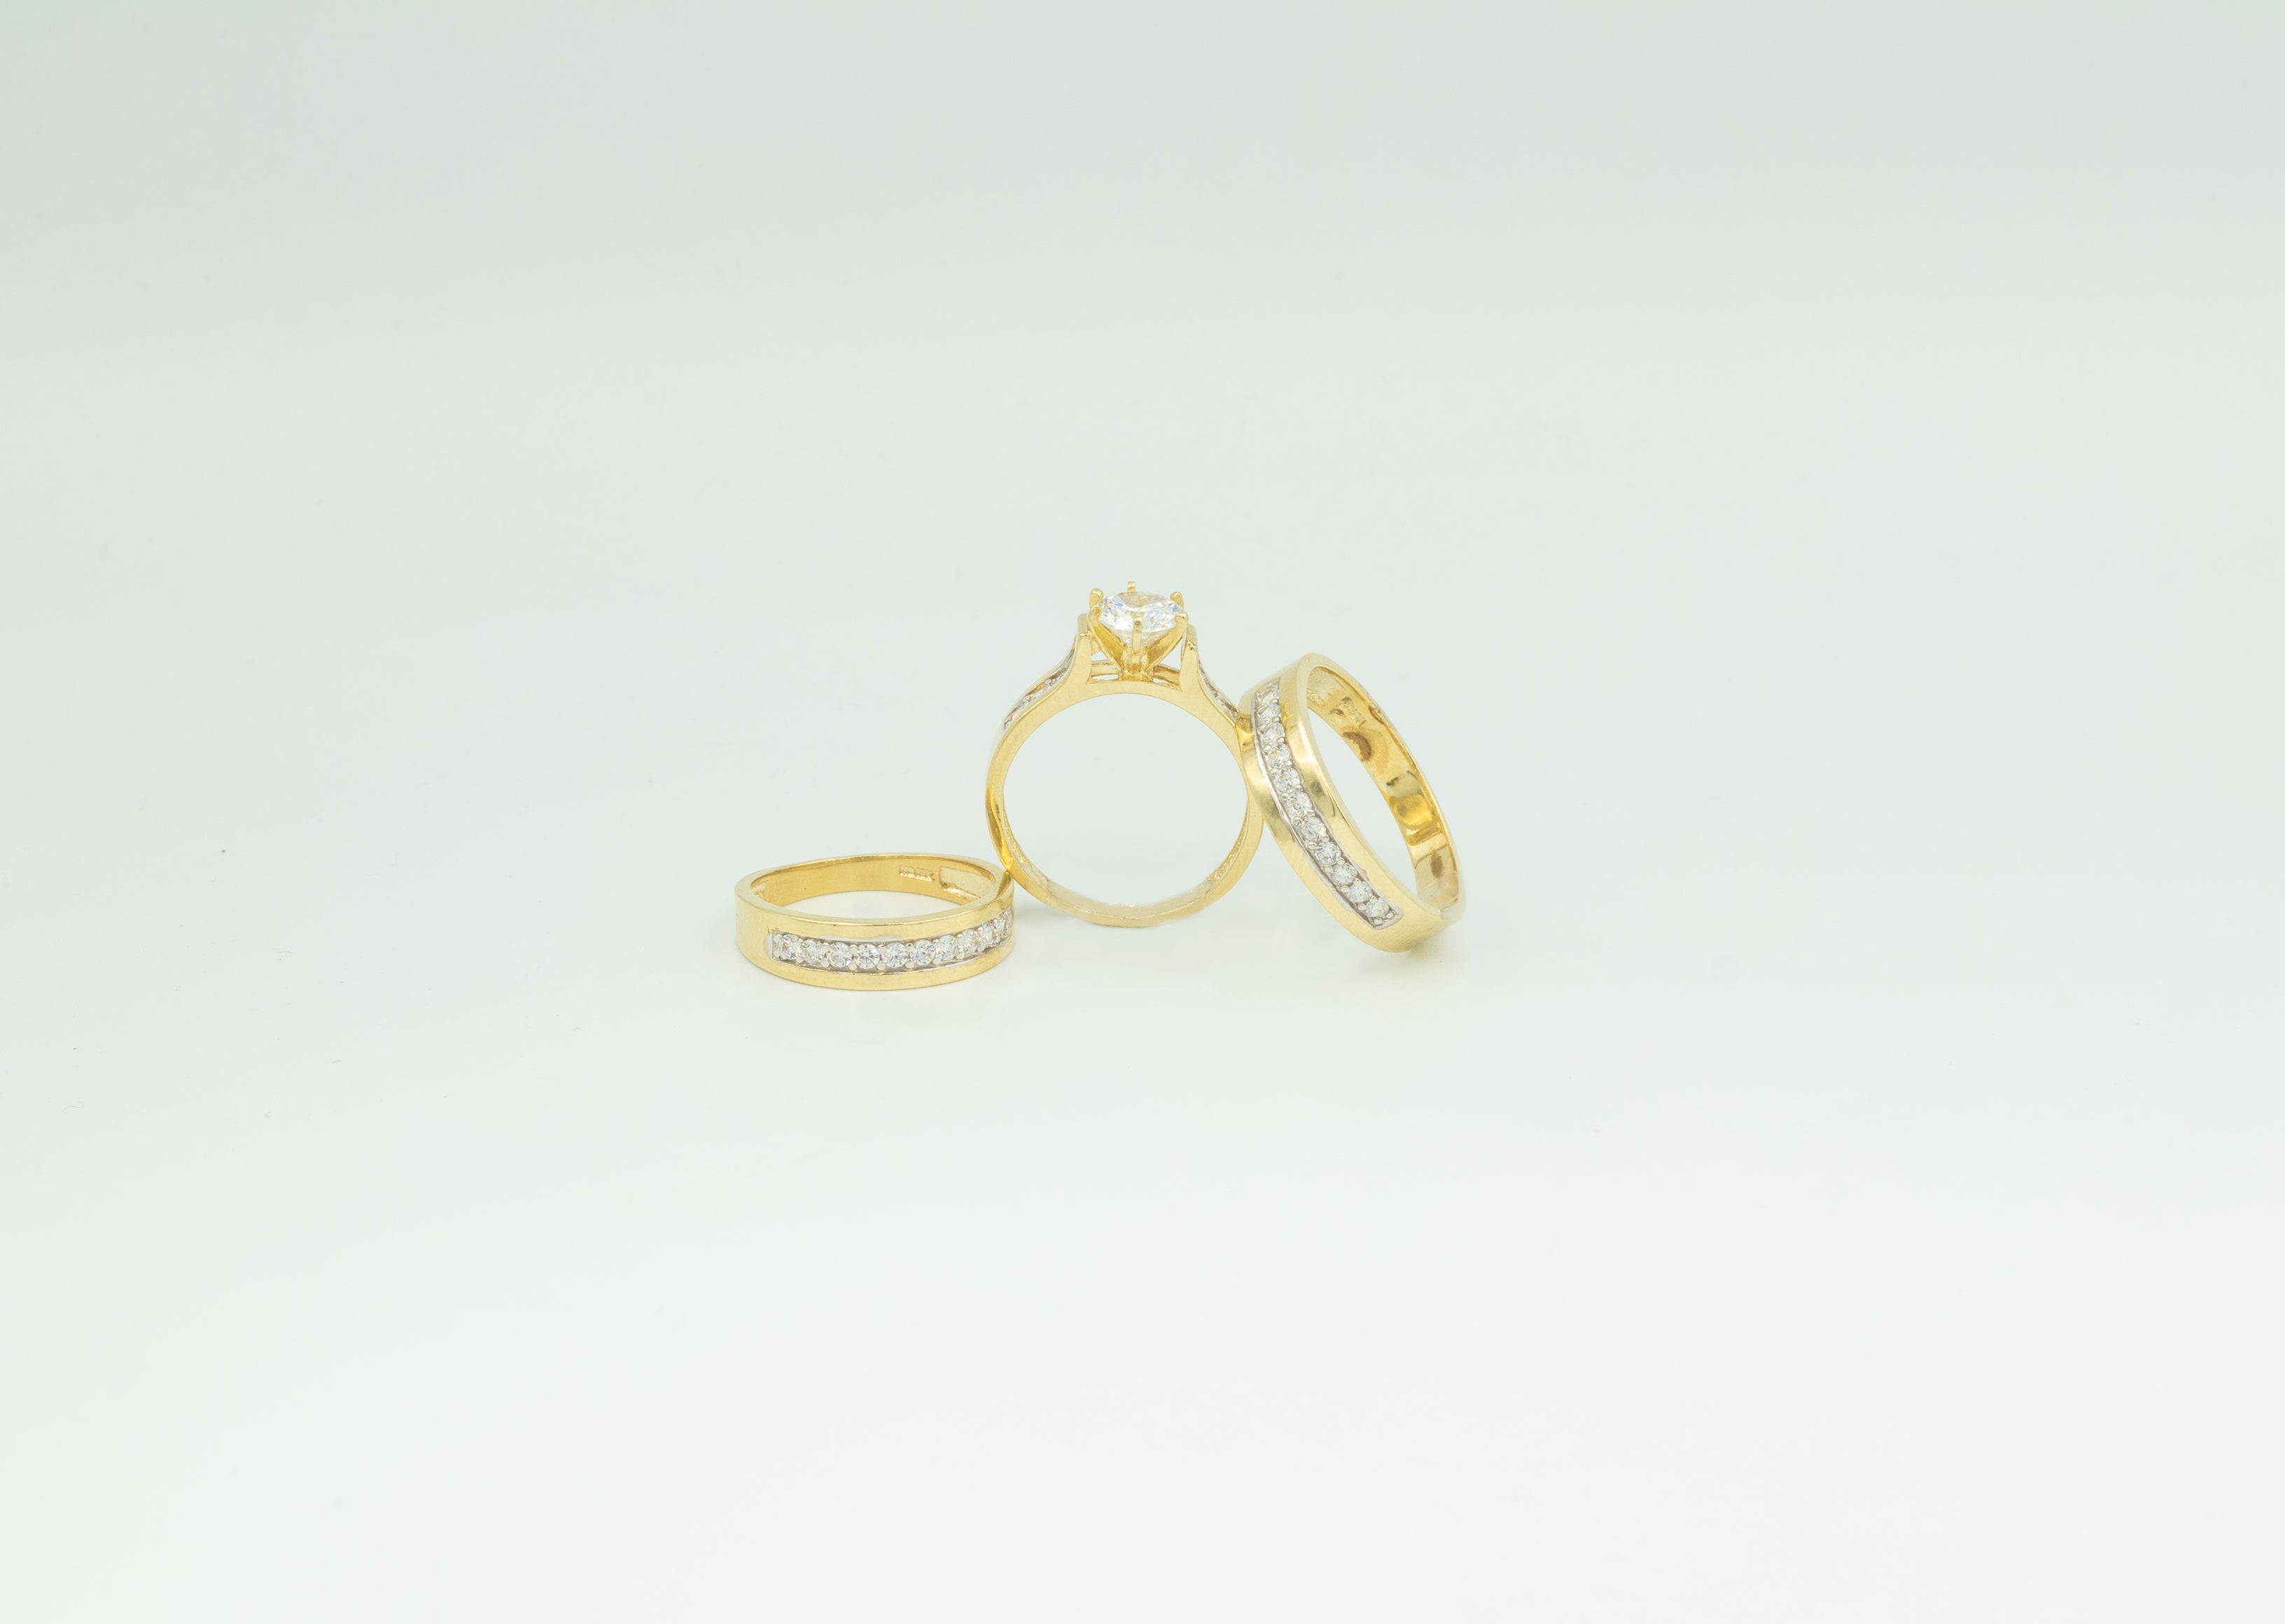 3 Piece Wedding Rings Set